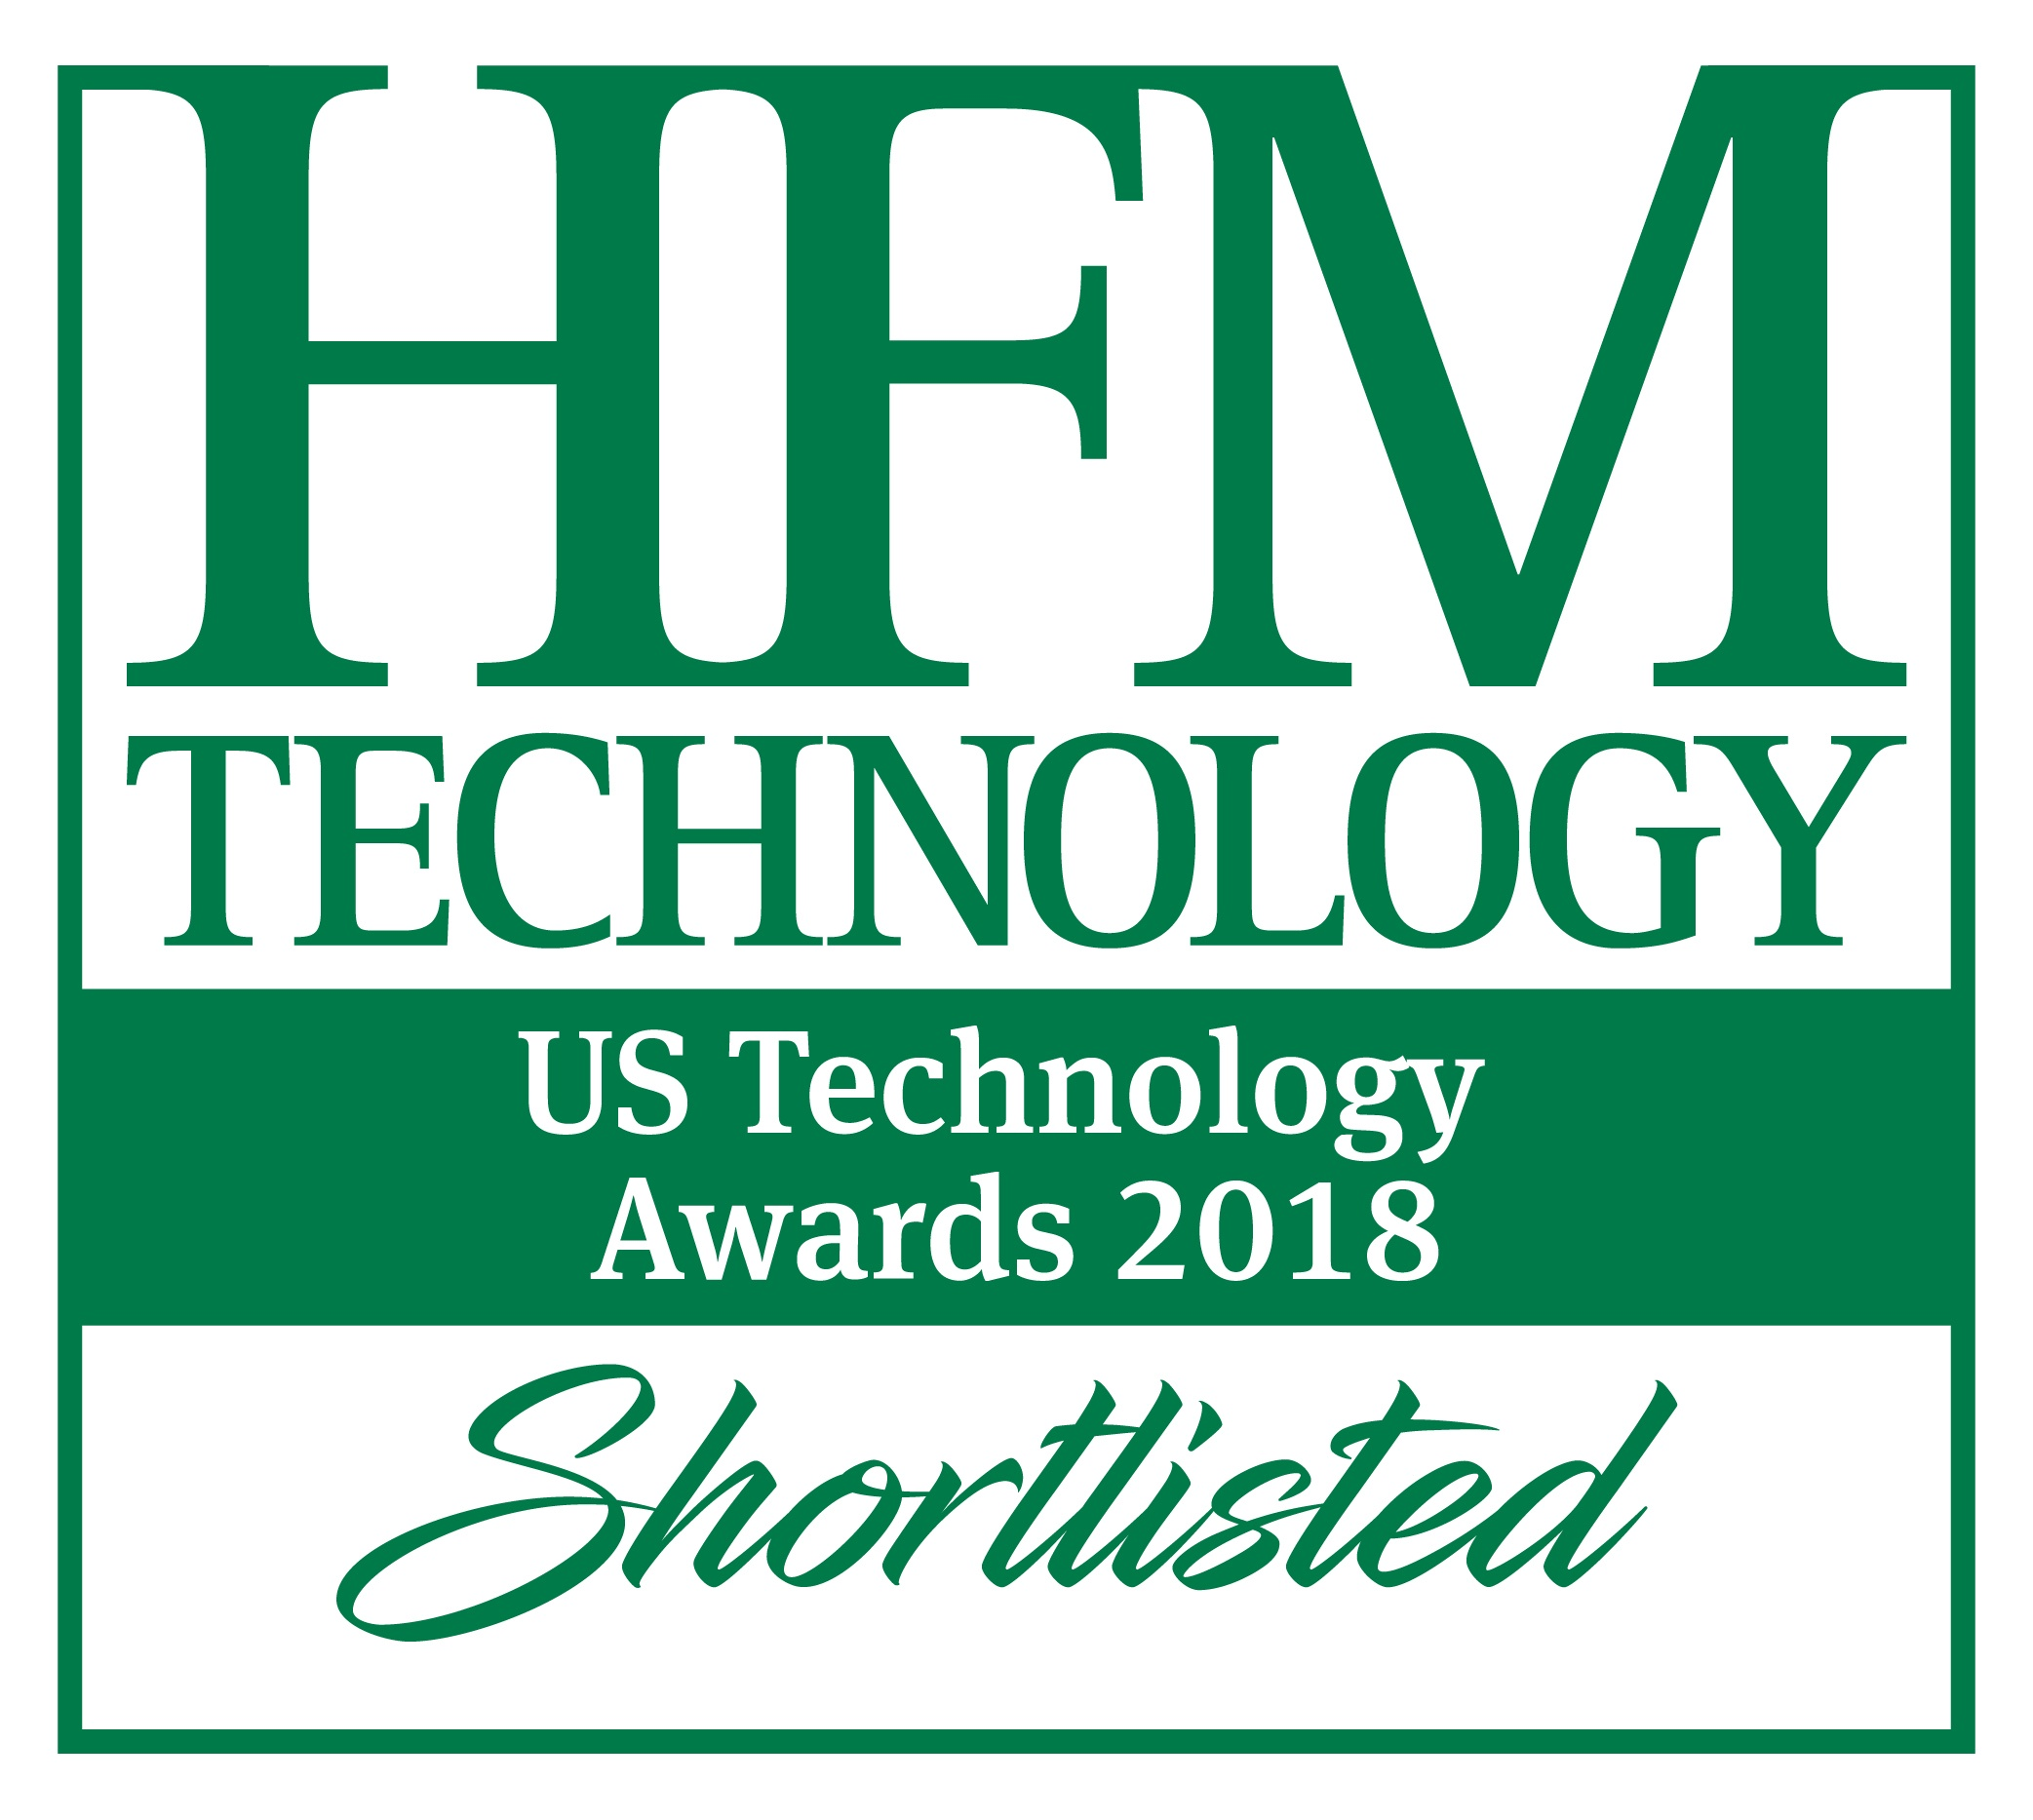 2018 US Hedge Fund Technology Awards Shortlisted